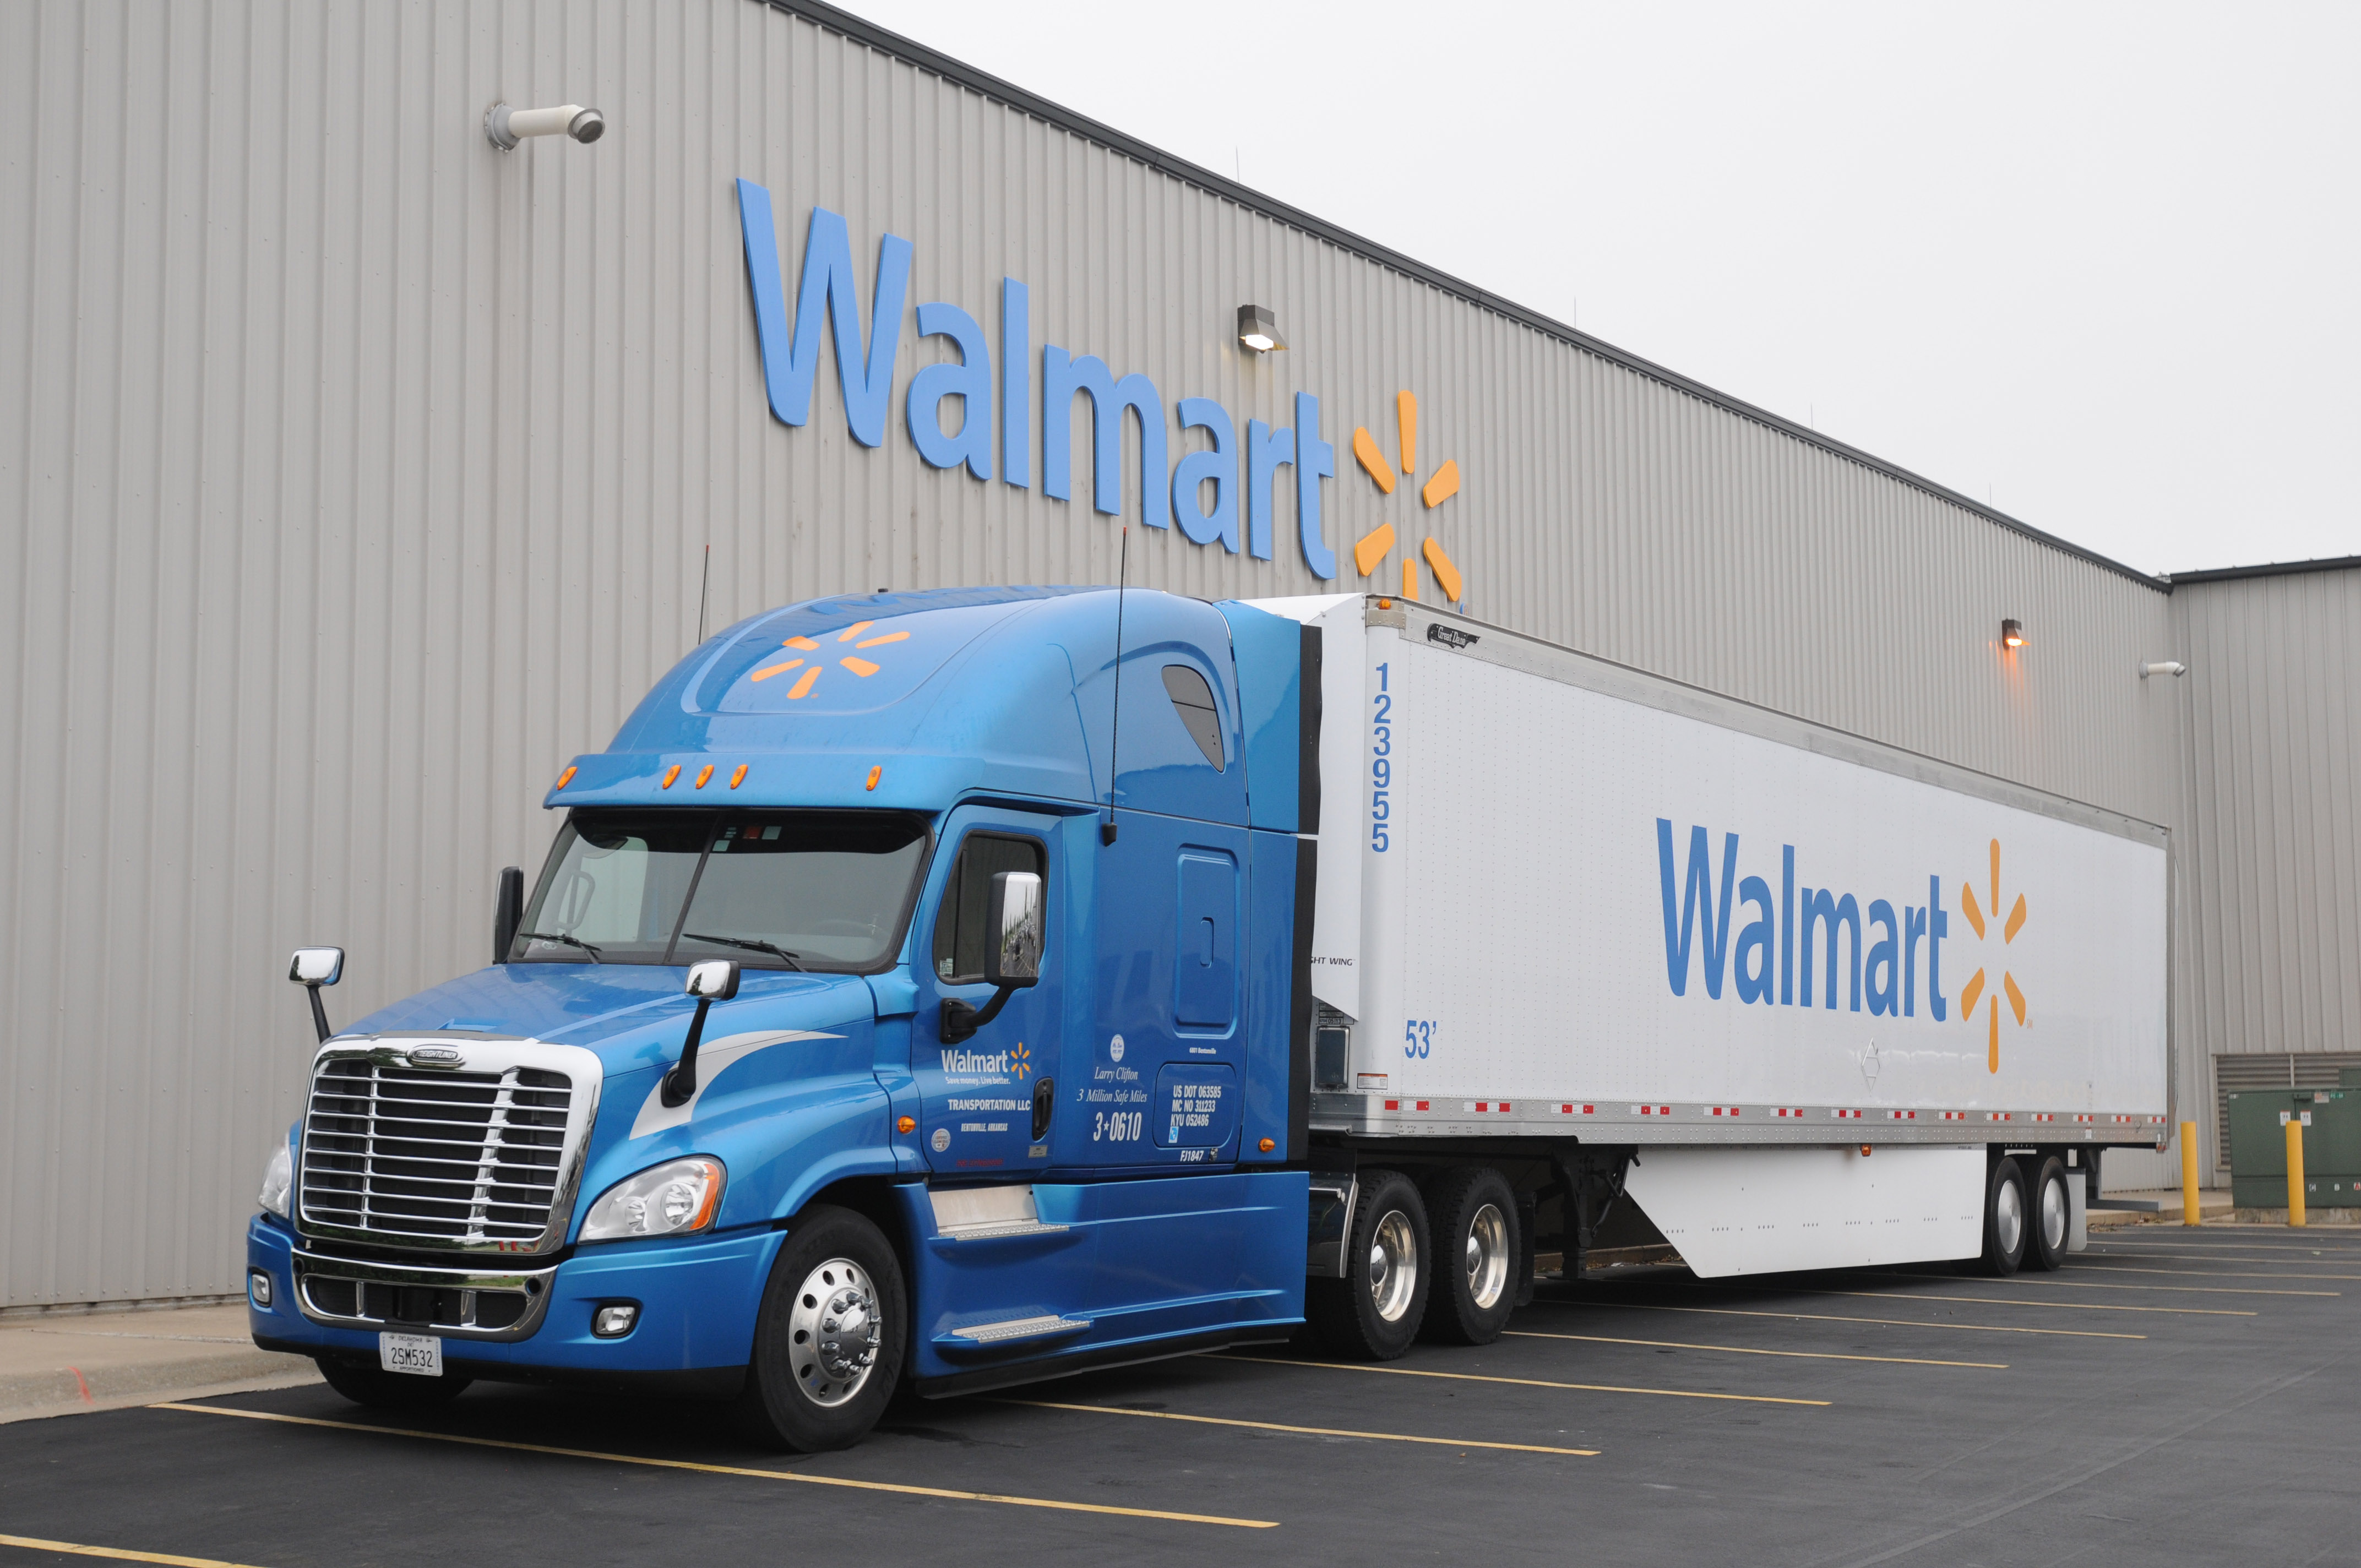 walmart truck and trailer. Black Bedroom Furniture Sets. Home Design Ideas